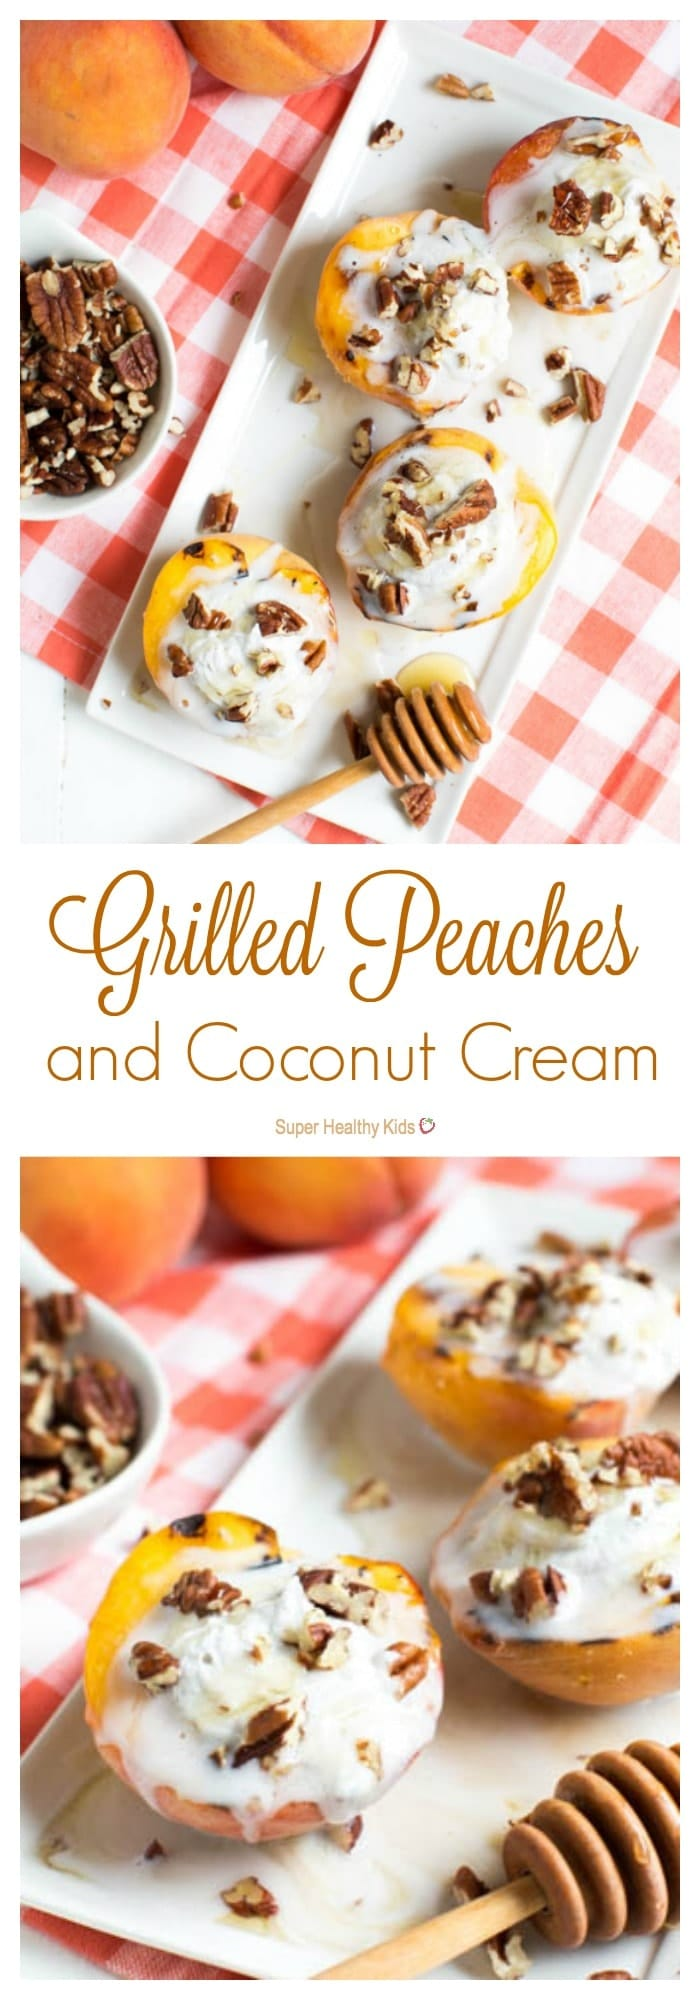 Grilled Peaches and Coconut Cream. Peaches and cream with a delicious twist that is the perfect addition to any Summer barbeque. http://www.superhealthykids.com/grilled-peaches-coconut-cream/